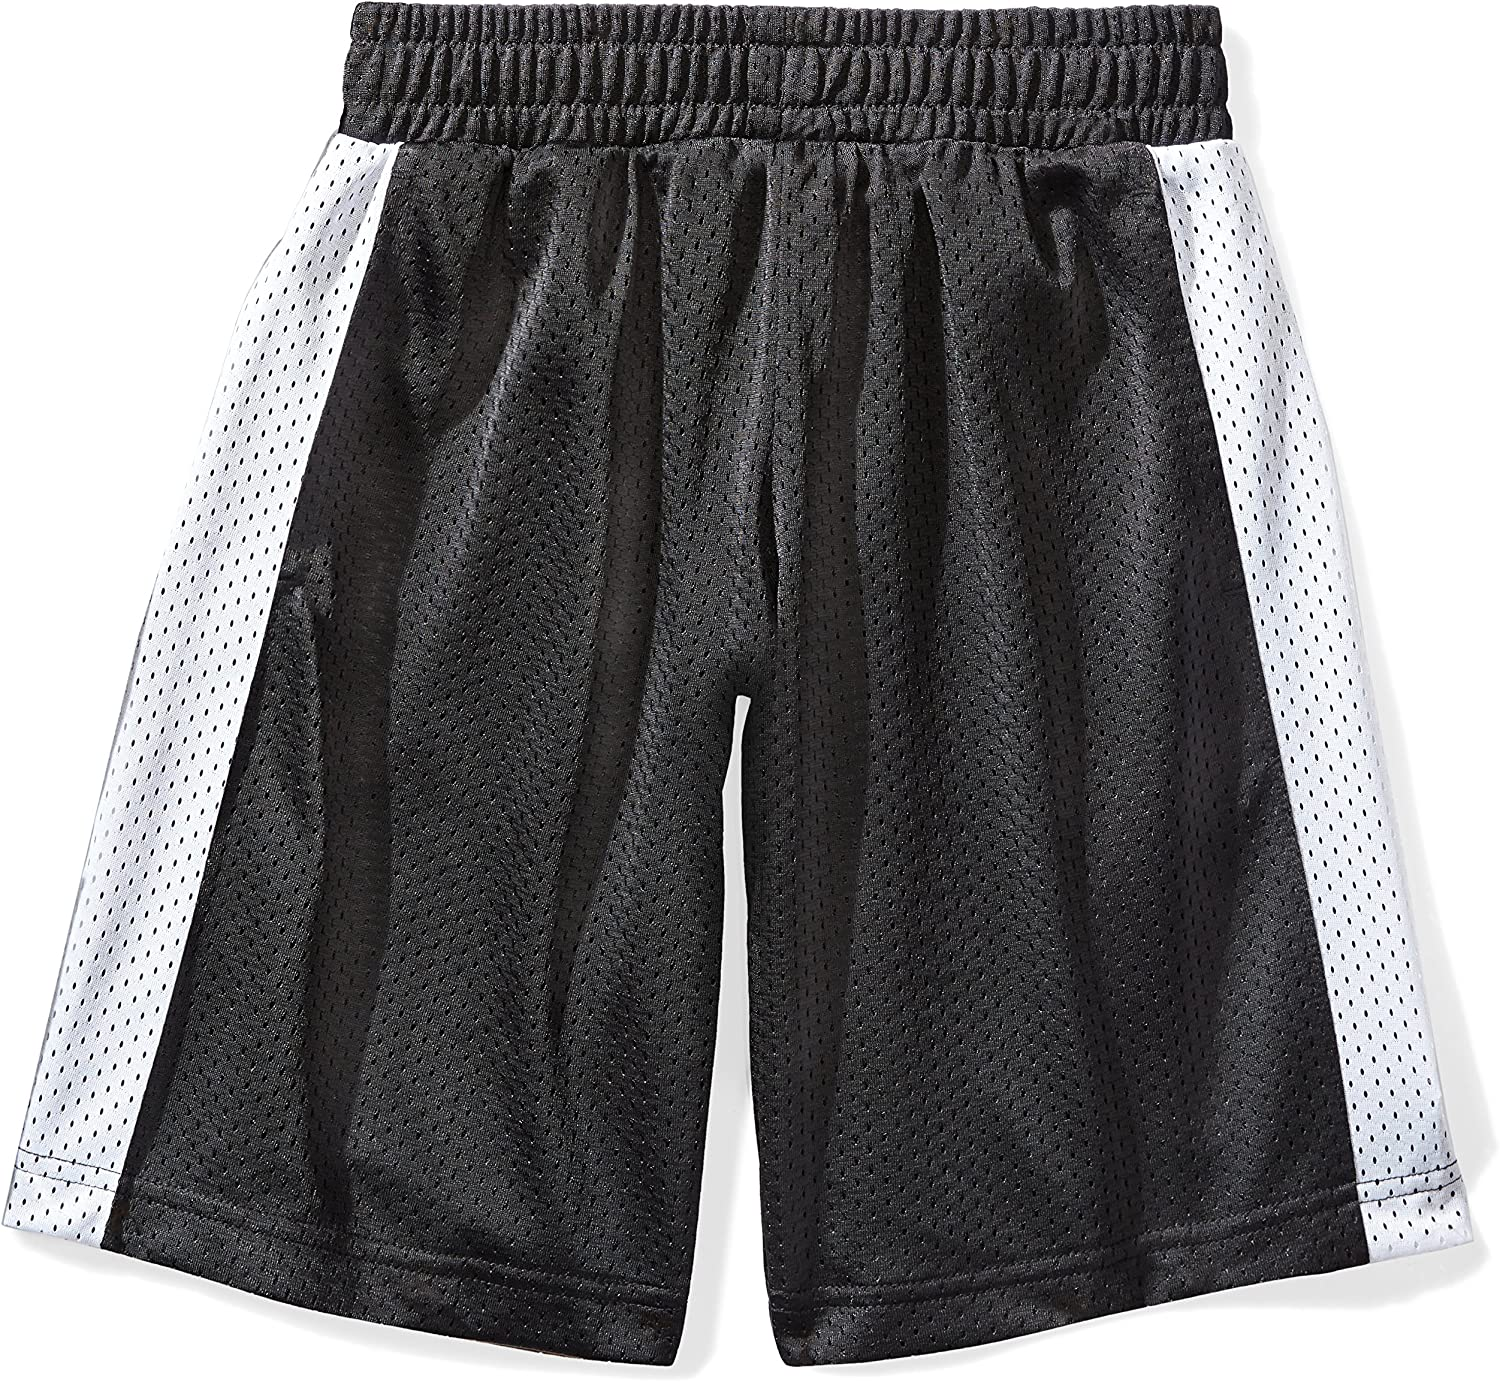 Exclusive Starter Girls 9 Mesh Short with Side Panel